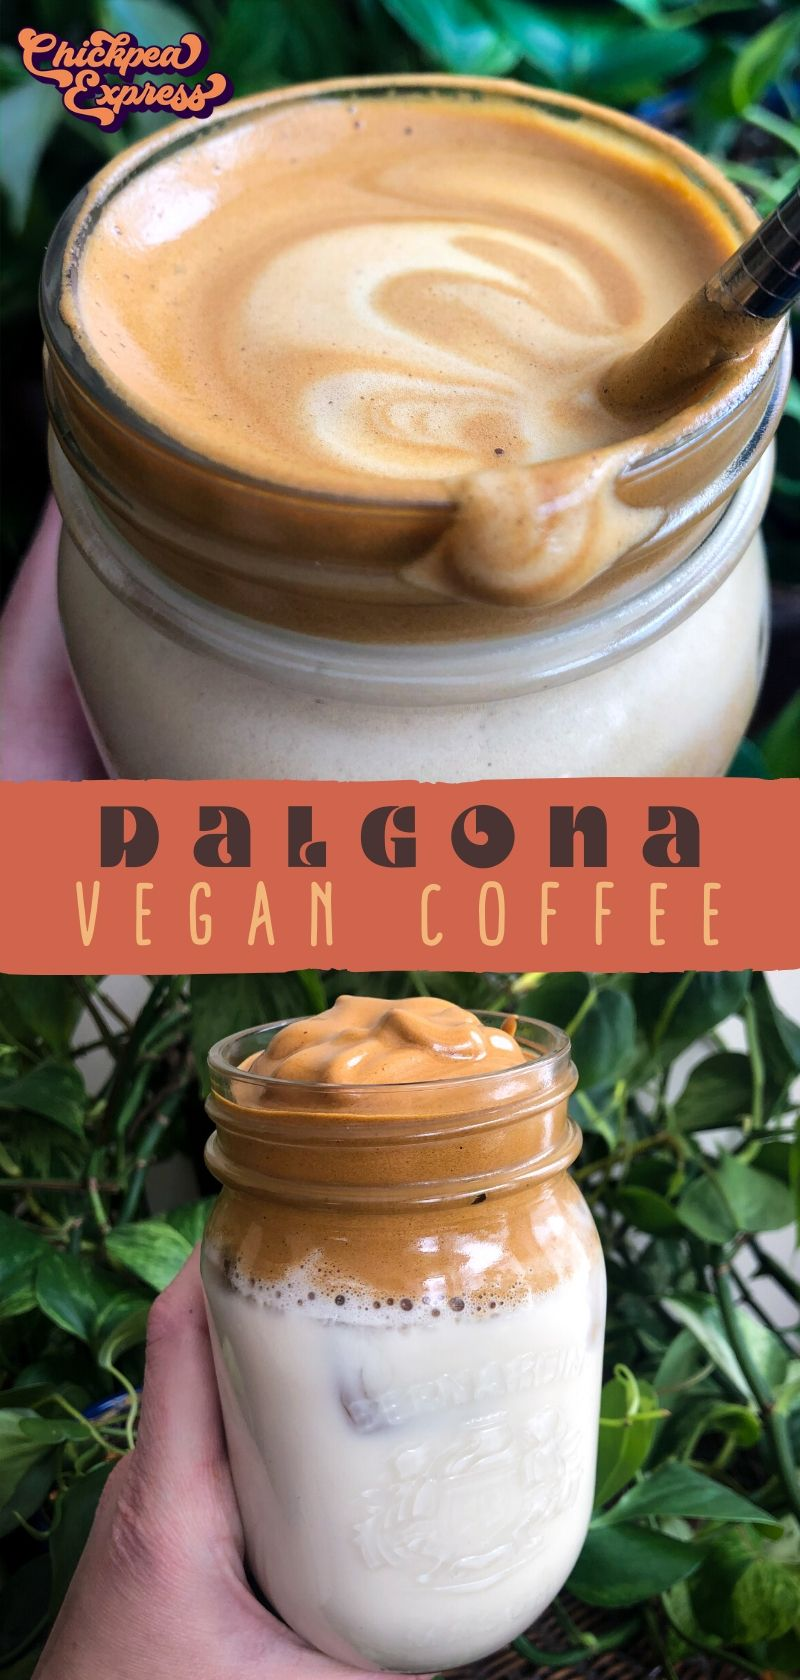 Dalgona Coffee Recipe in 2020 Coffee recipes, Vegan